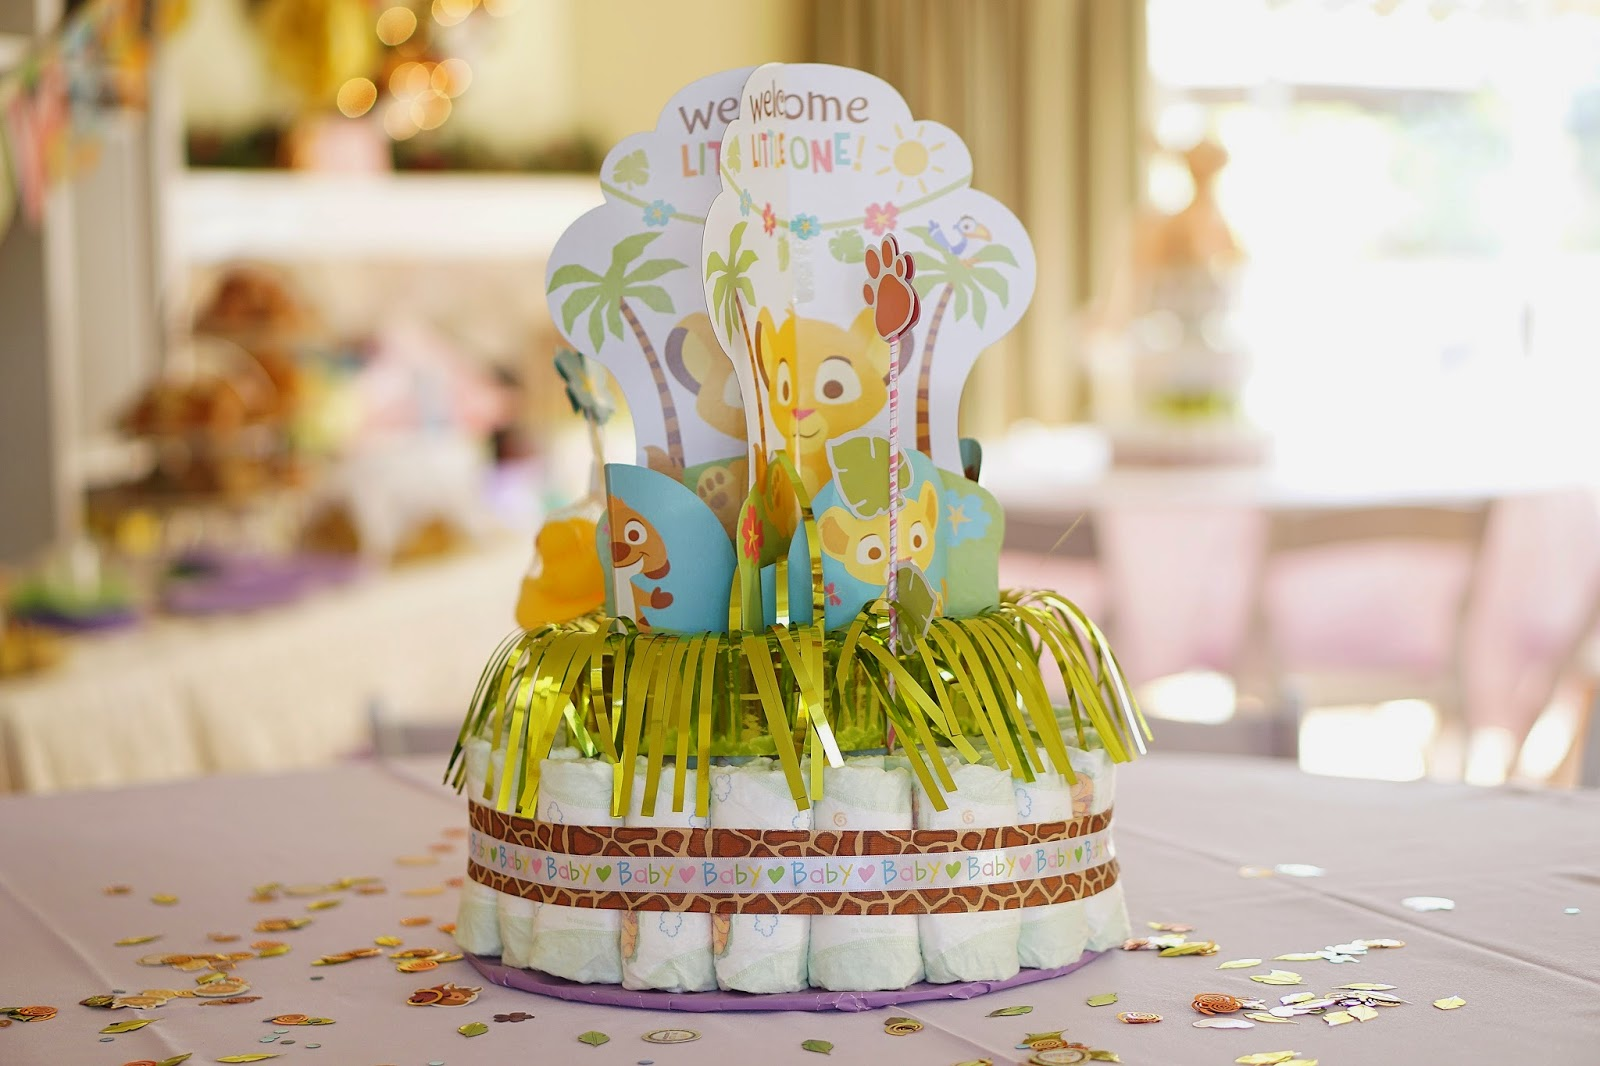 Lion King Baby Shower Theme, Girl Lion King Baby Shower, Baby Shower ideas, Girl Baby Shower Ideas, Lion King Theme Party, Diaper Cakes, Jungle Theme Baby Shower, Lion King Baby Shower, Lion King Party, Lion King